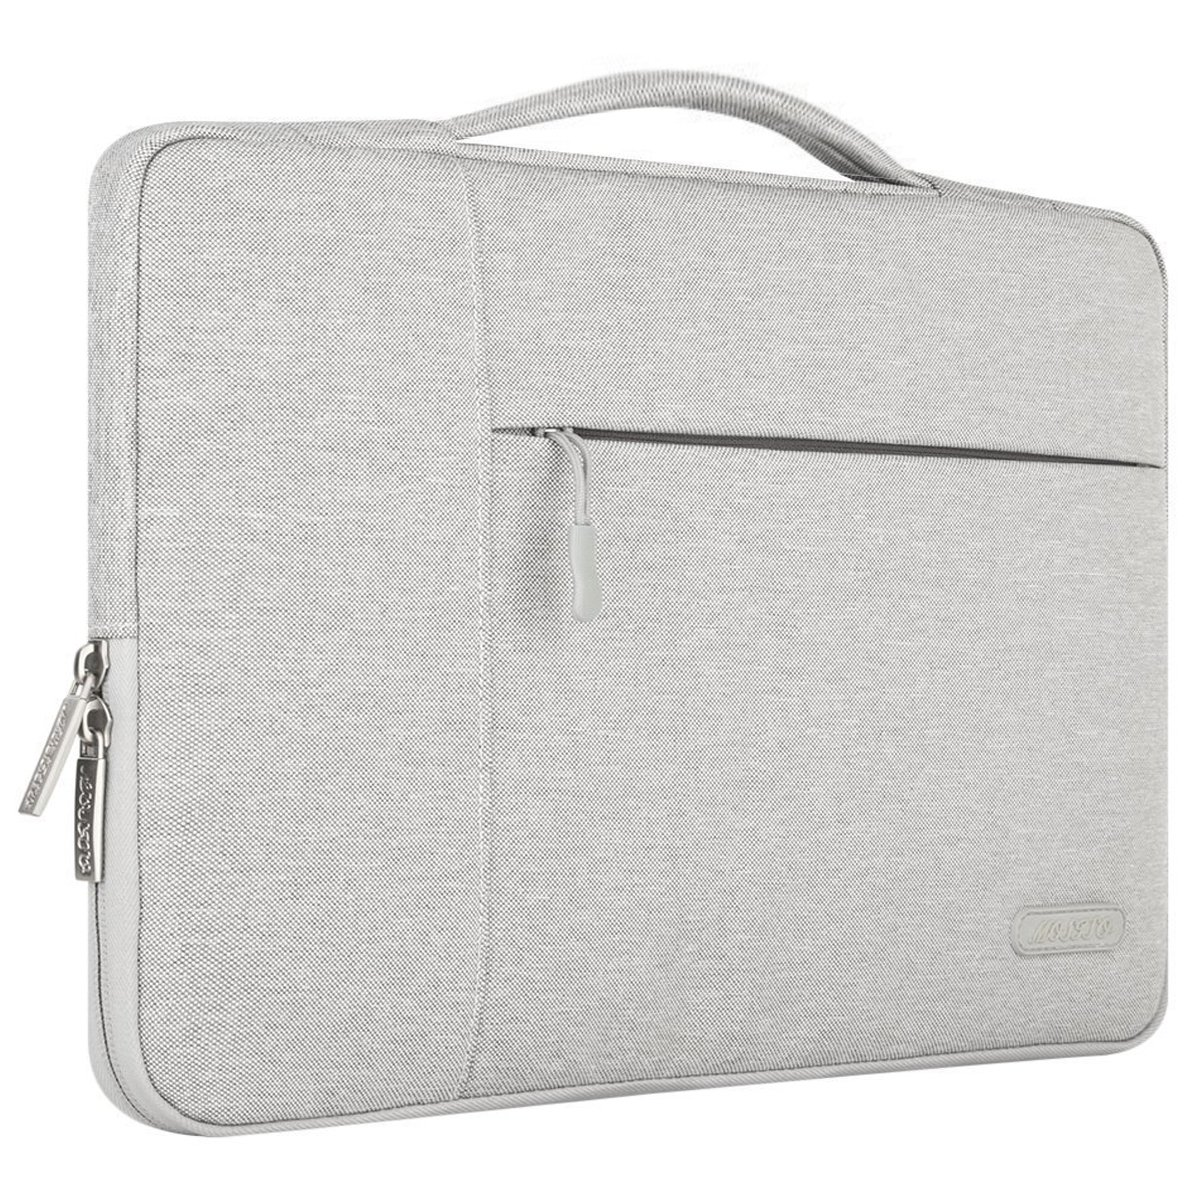 MOSISO Laptop Sleeve Briefcase Handbag Compatible 15-15.6 Inch MacBook Pro, Notebook Computer, Polyester Fabric Multifunctional Carrying Case Protective Bag Cover, Gray